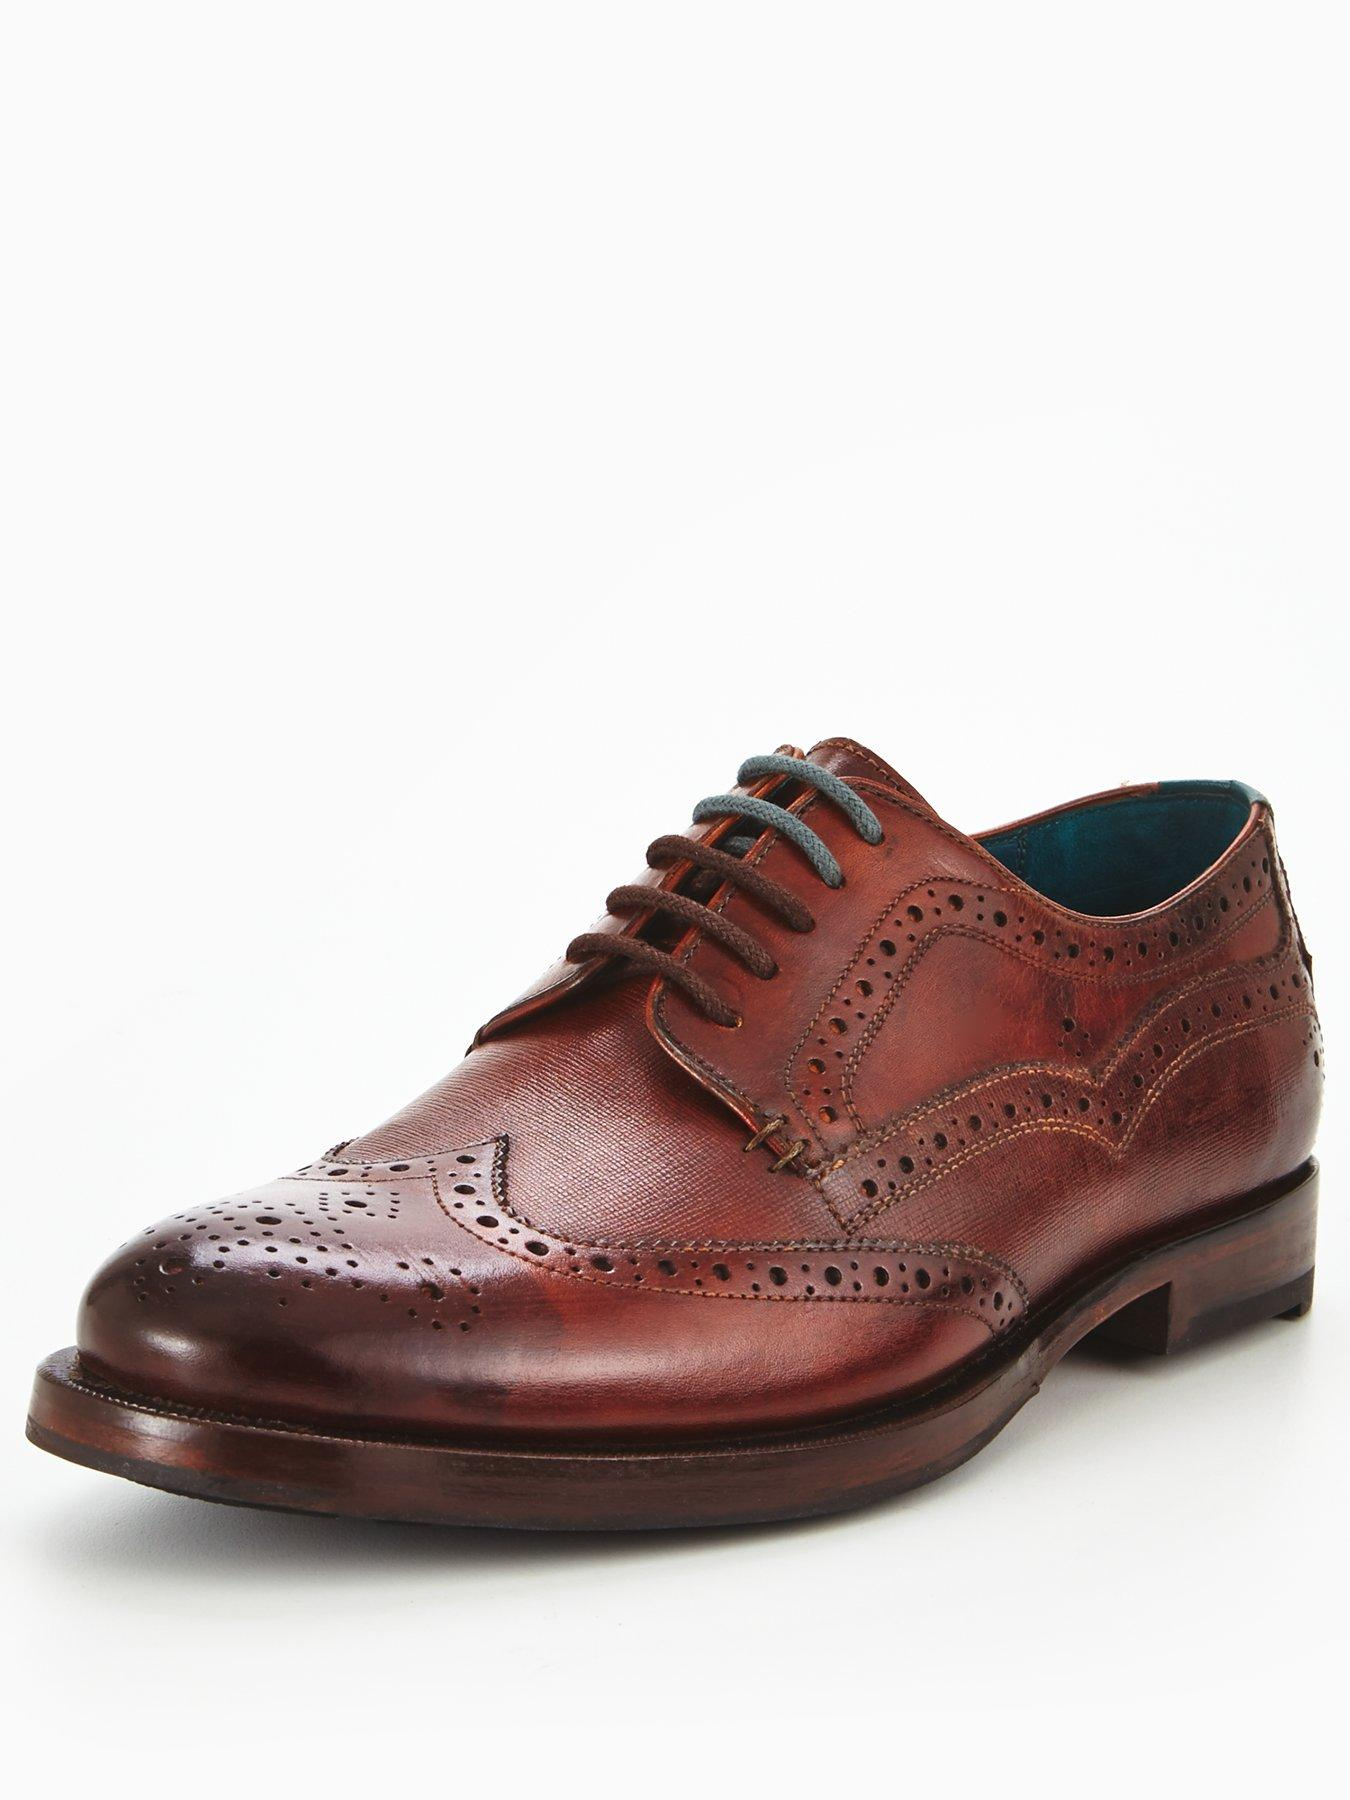 ted baker shoes iron man wallpaper for laptop